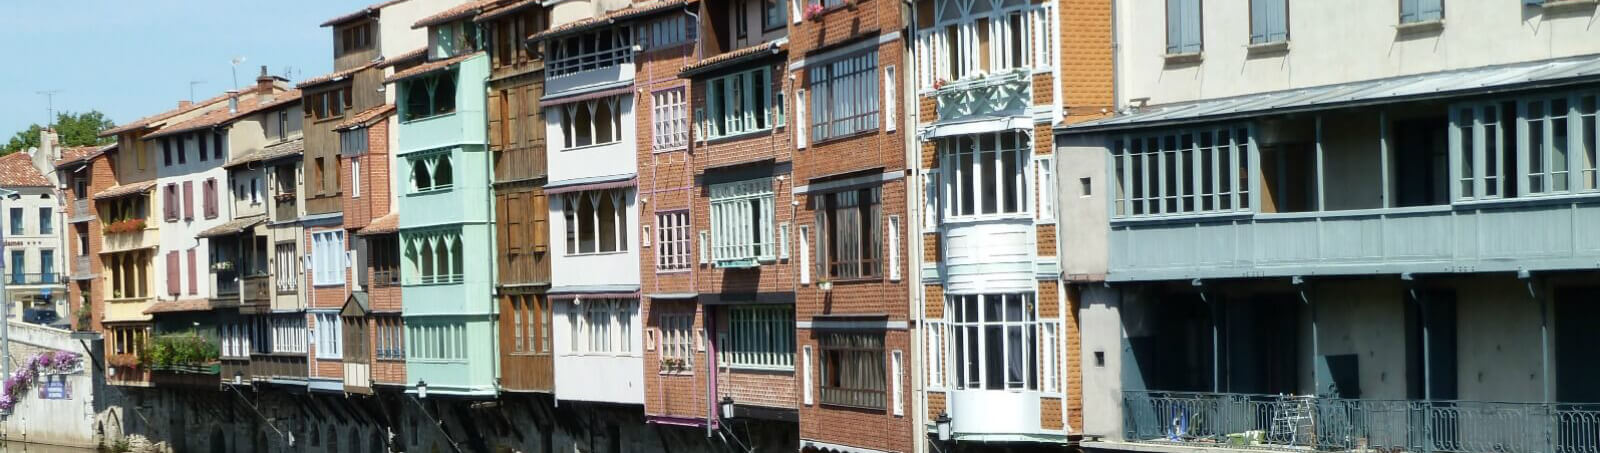 homestay program in castres France with the CEI